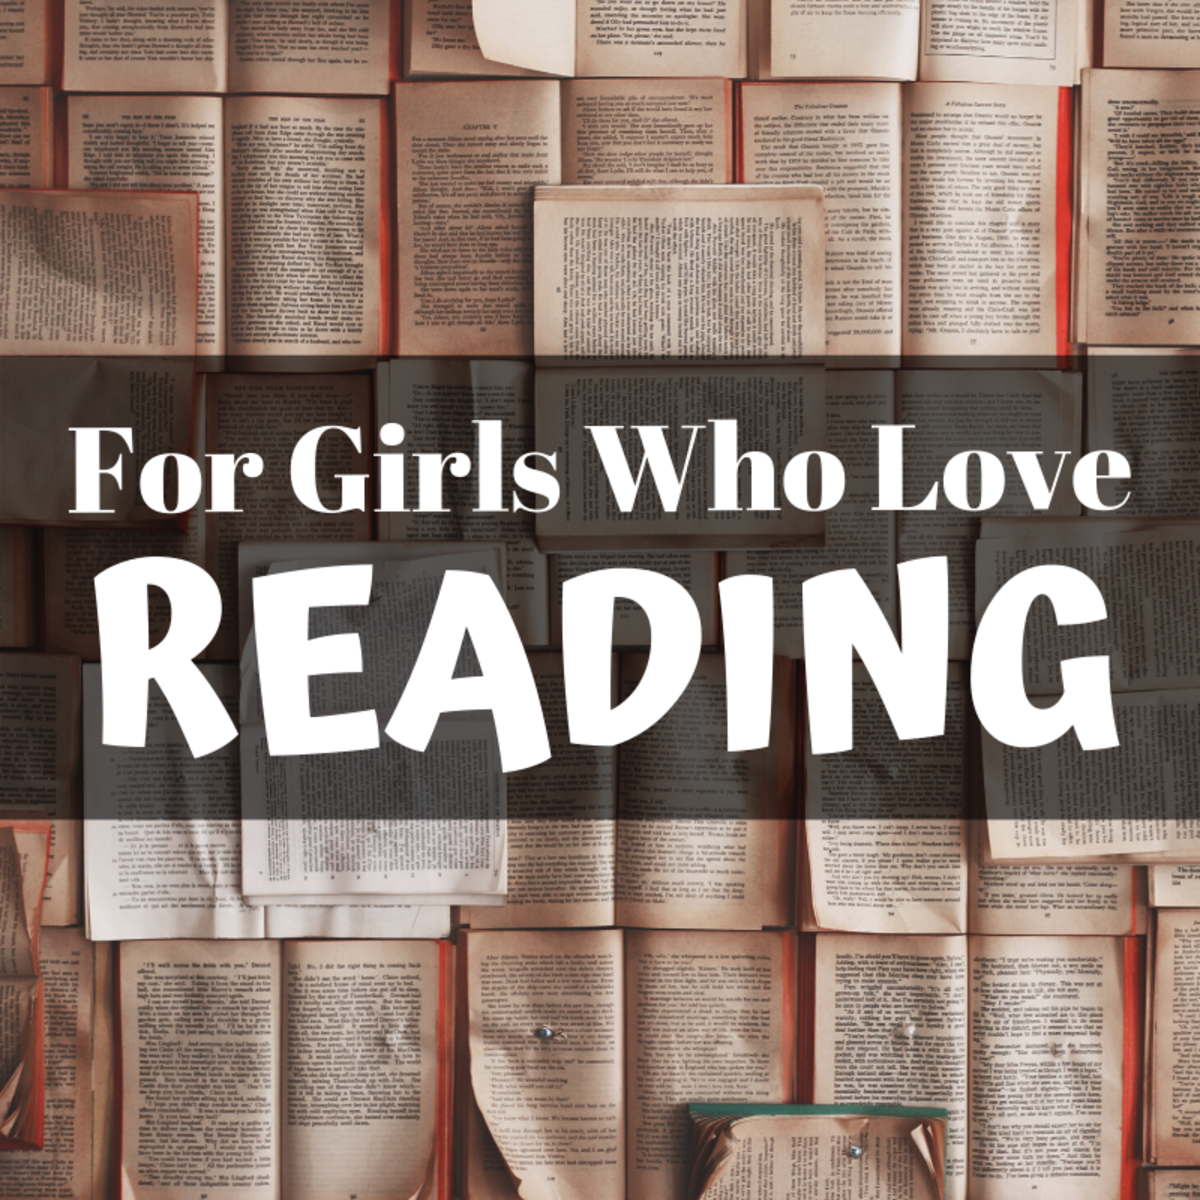 If your tomboy is a voracious reader, consider getting them one of these books featuring strong female protagonists.